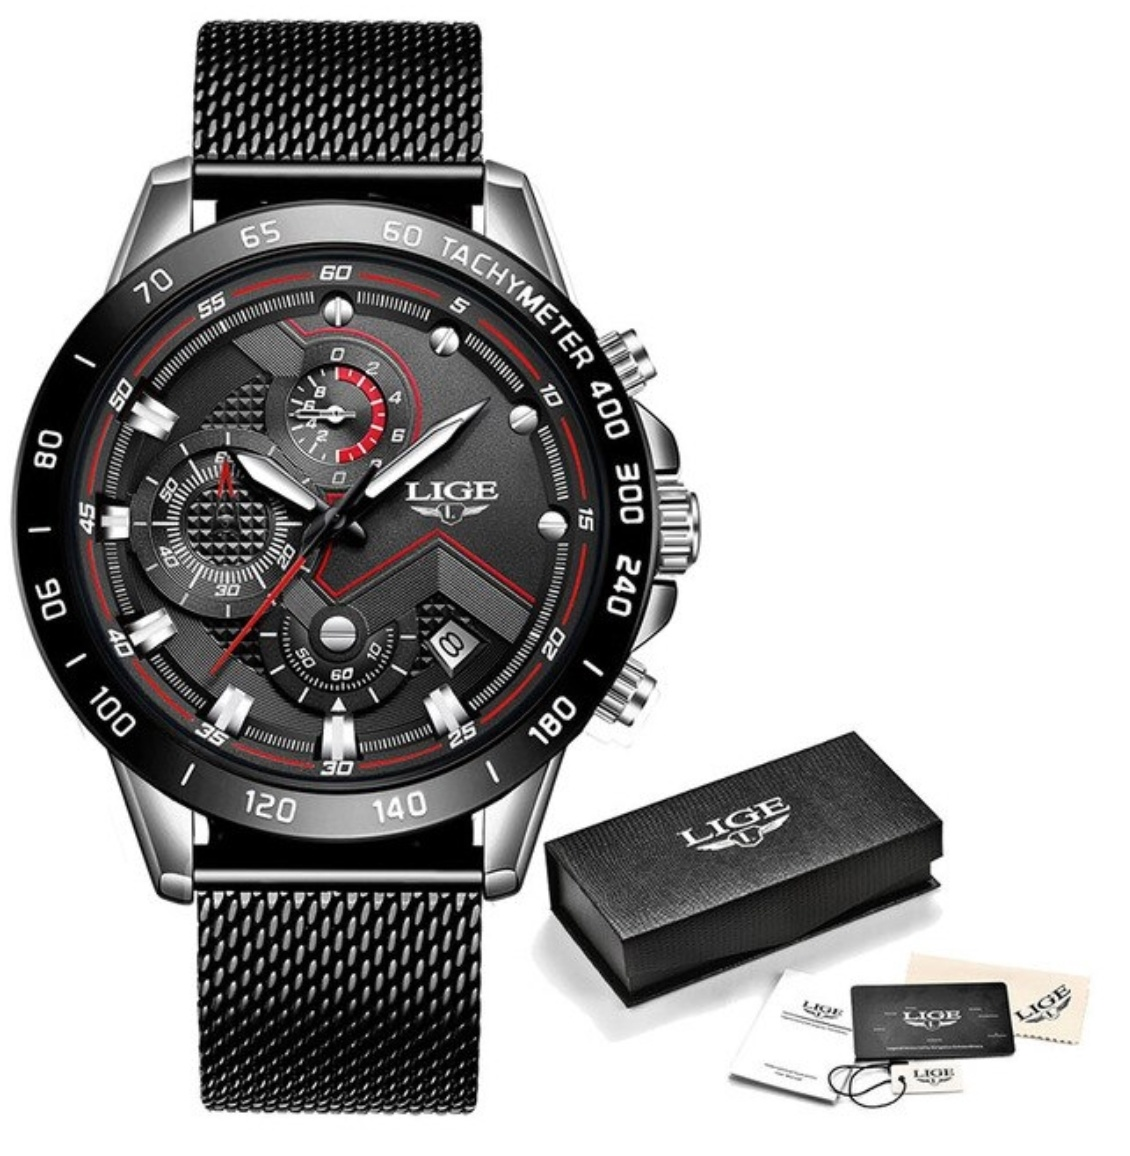 Quartz Watch - Anologue Luxury Movement for Men - Stainless Steel - Black